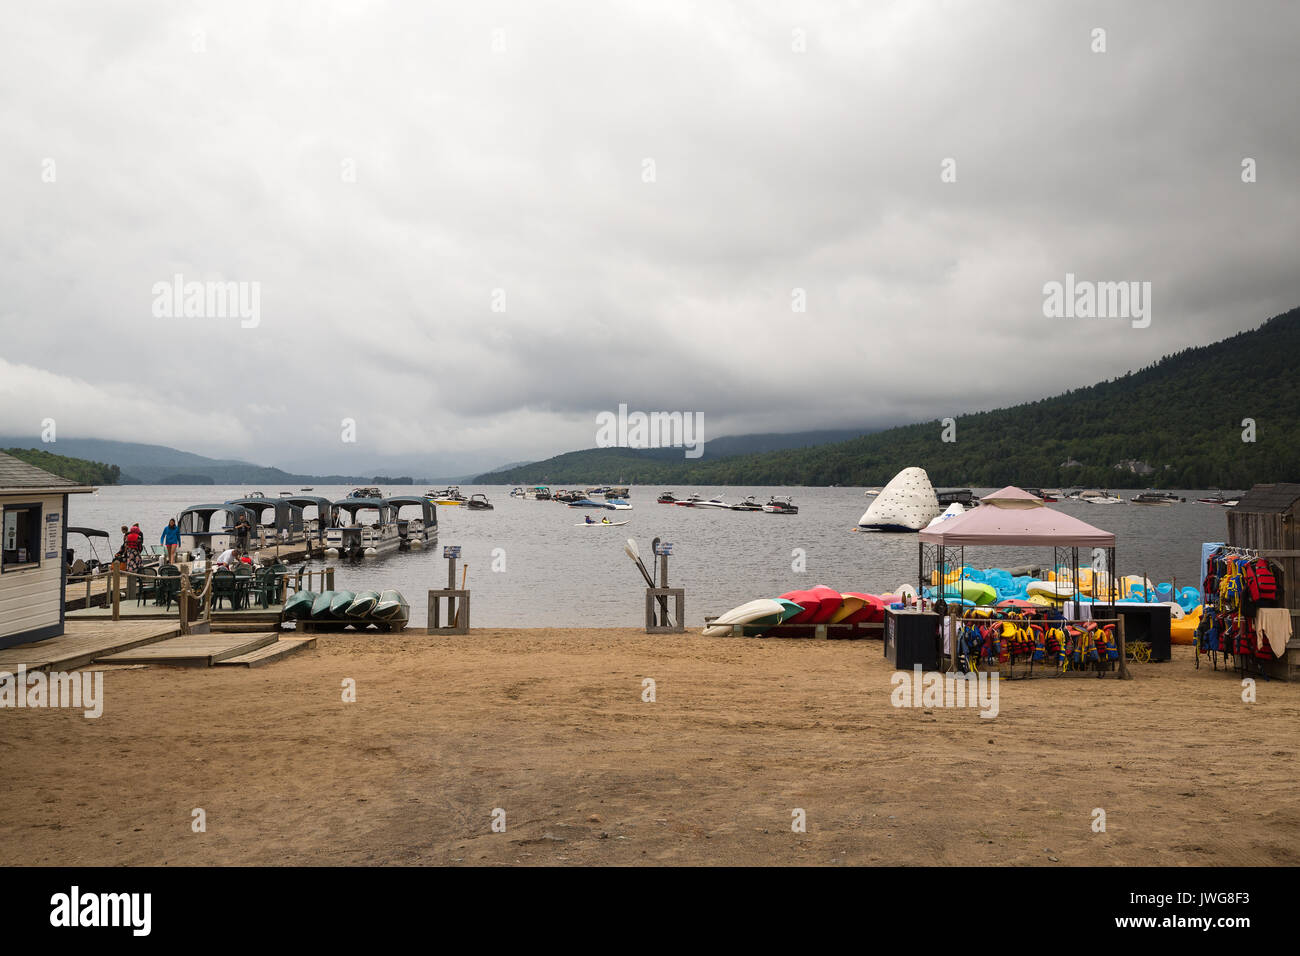 Lake Tremblant at the foot of Mont Tremblant in Canada - Stock Image & Mont Tremblant National Park Stock Photos u0026 Mont Tremblant ...